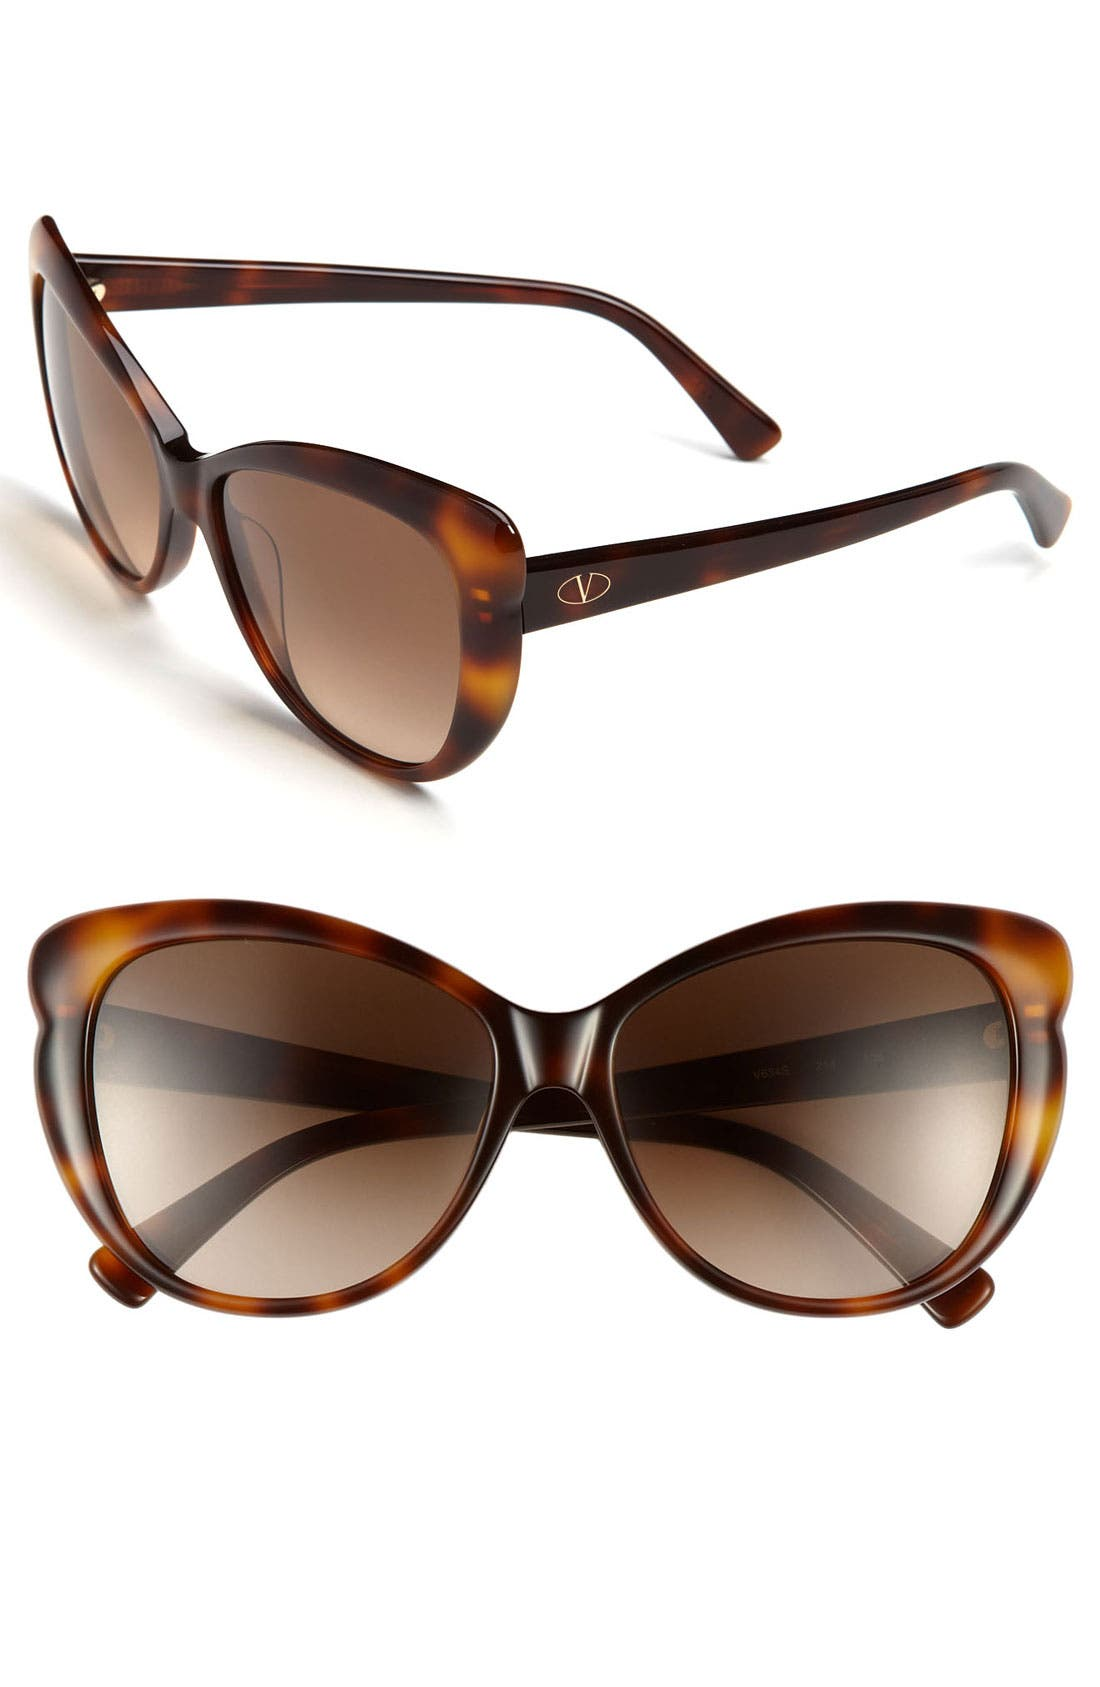 Main Image - Valentino 56mm Oversized Sunglasses